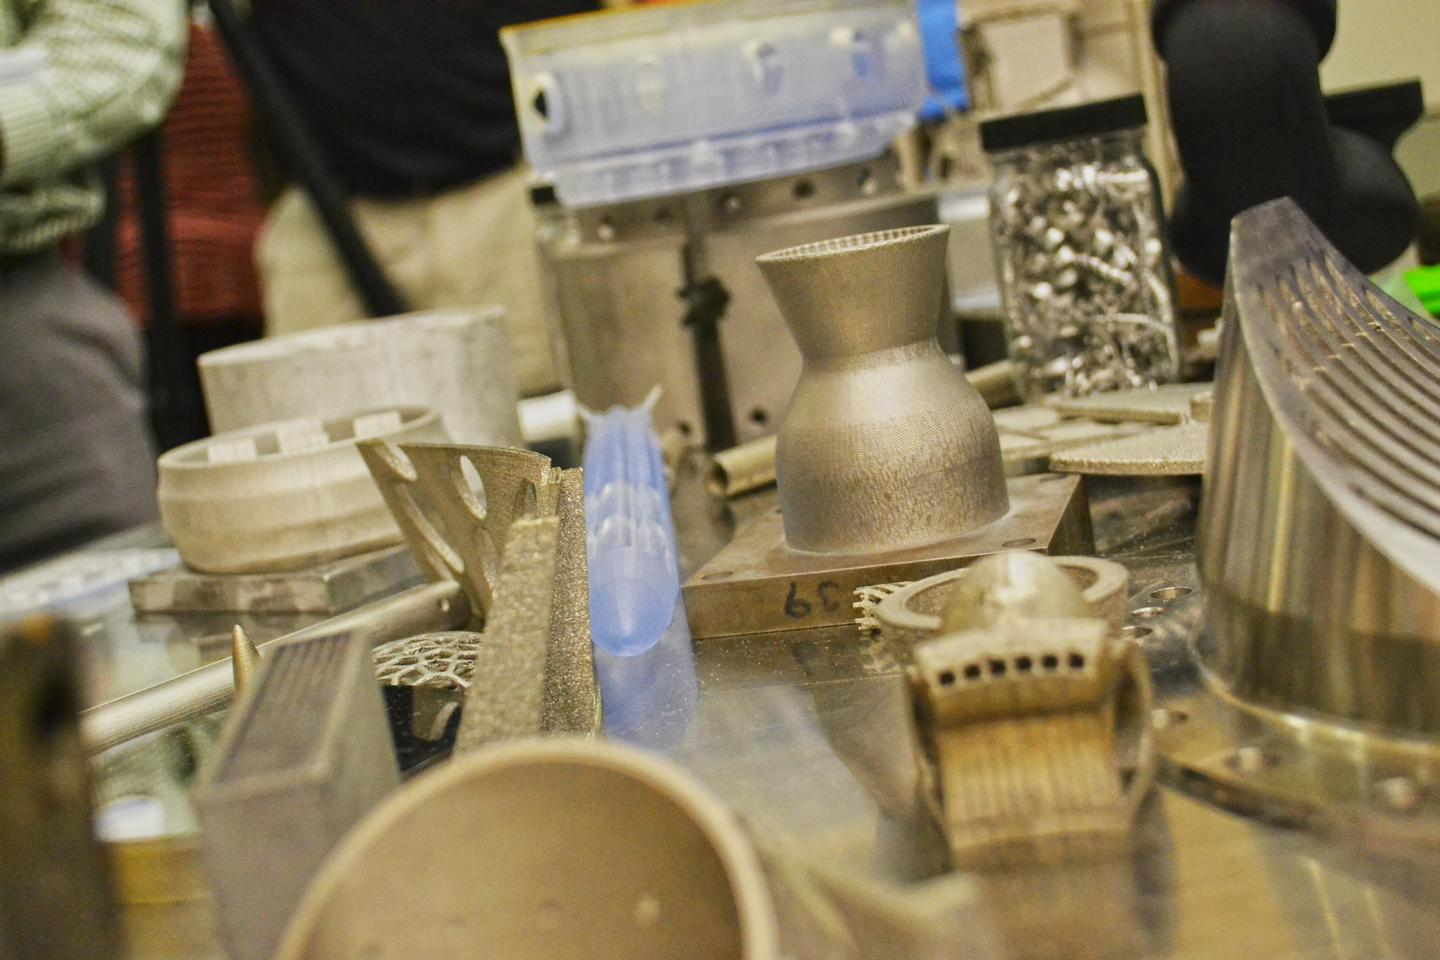 NASA's 3D-printed parts are saving the organization both weight and cost in manufacturing